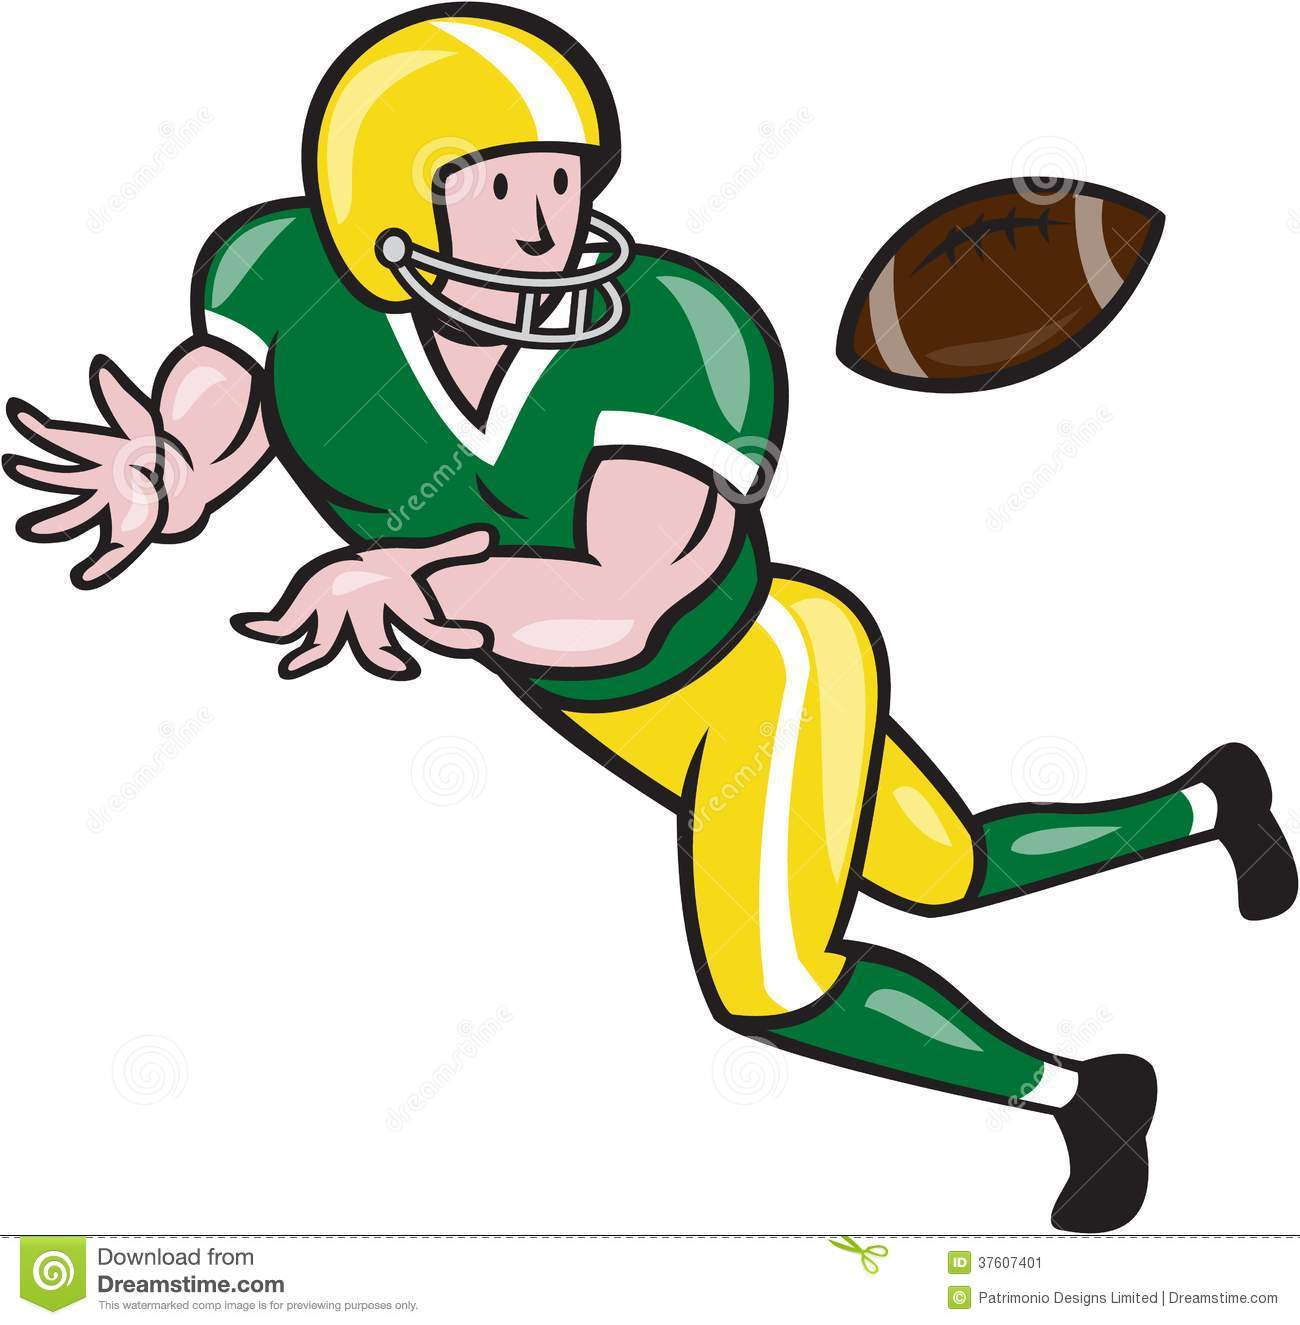 American Football Player Clipart Clipart-American Football Player Clipart Clipart Panda Free Clipart Images-7